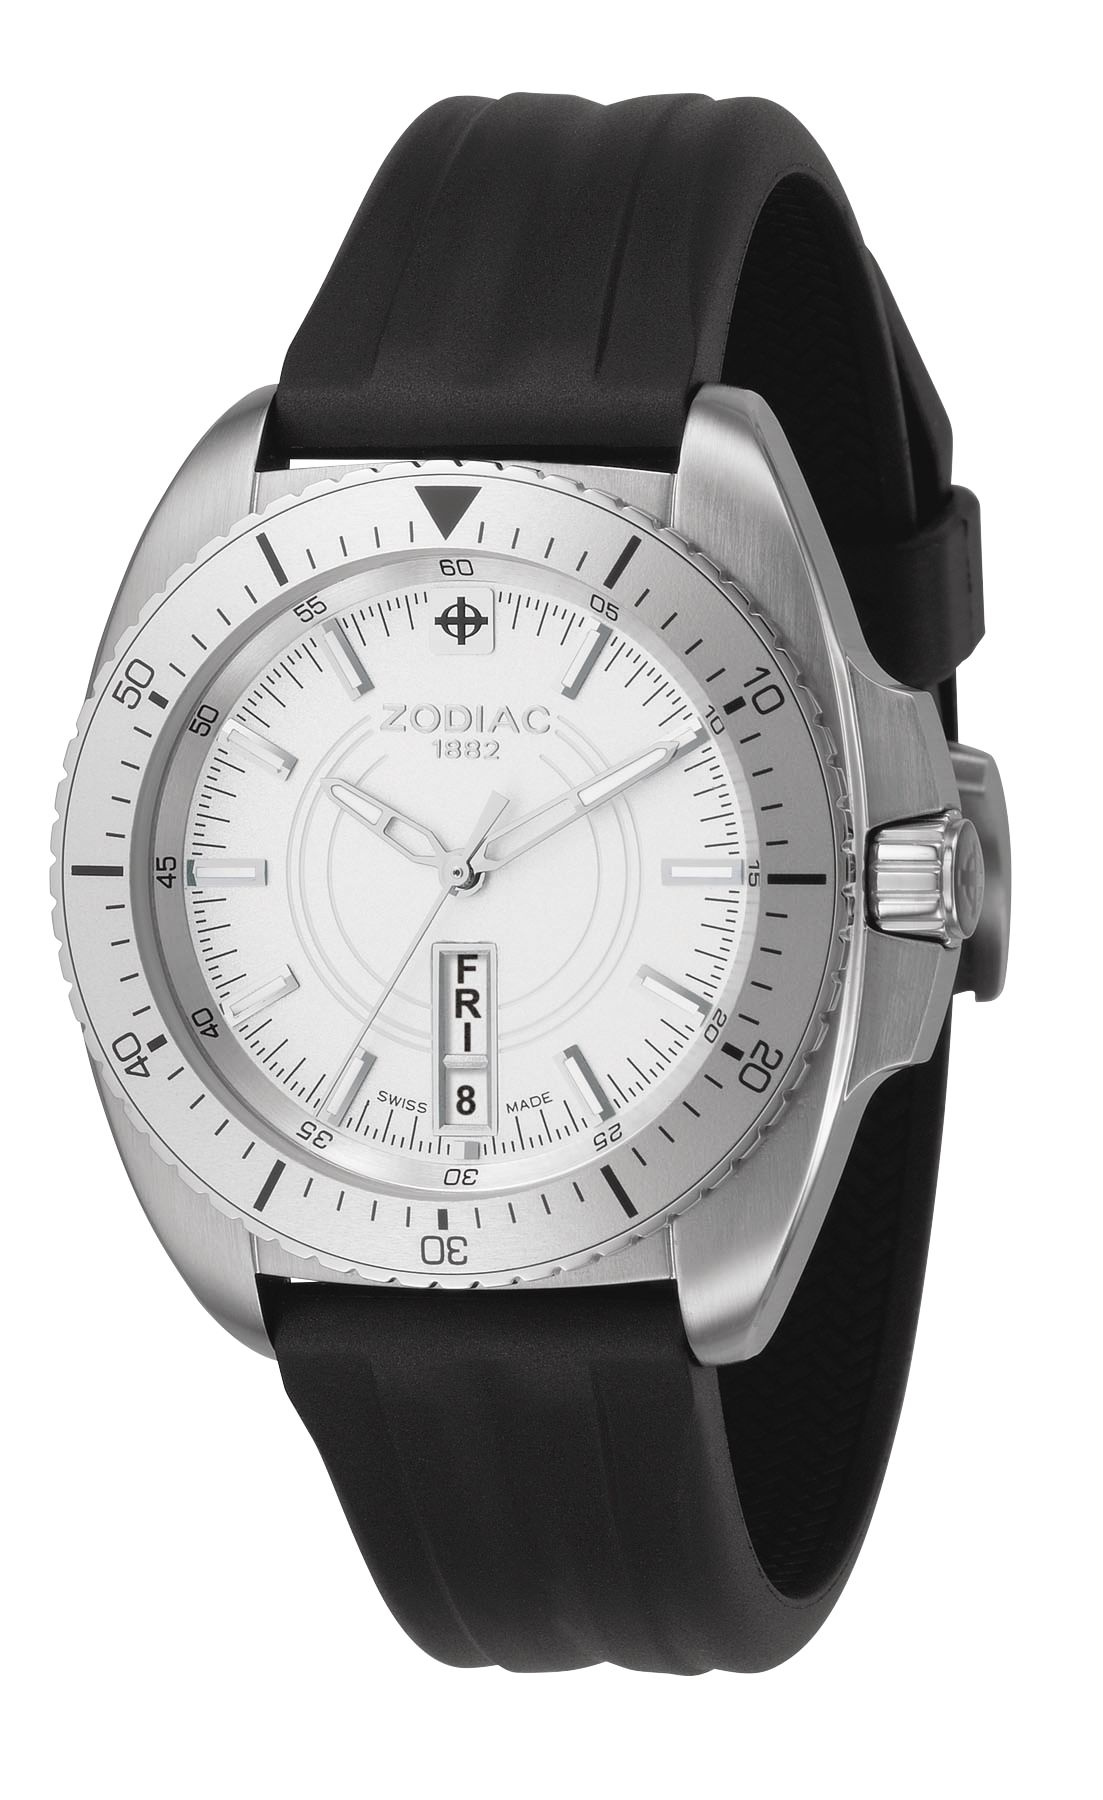 Zodiac Adventure sport ZO5500 gentlemens watch